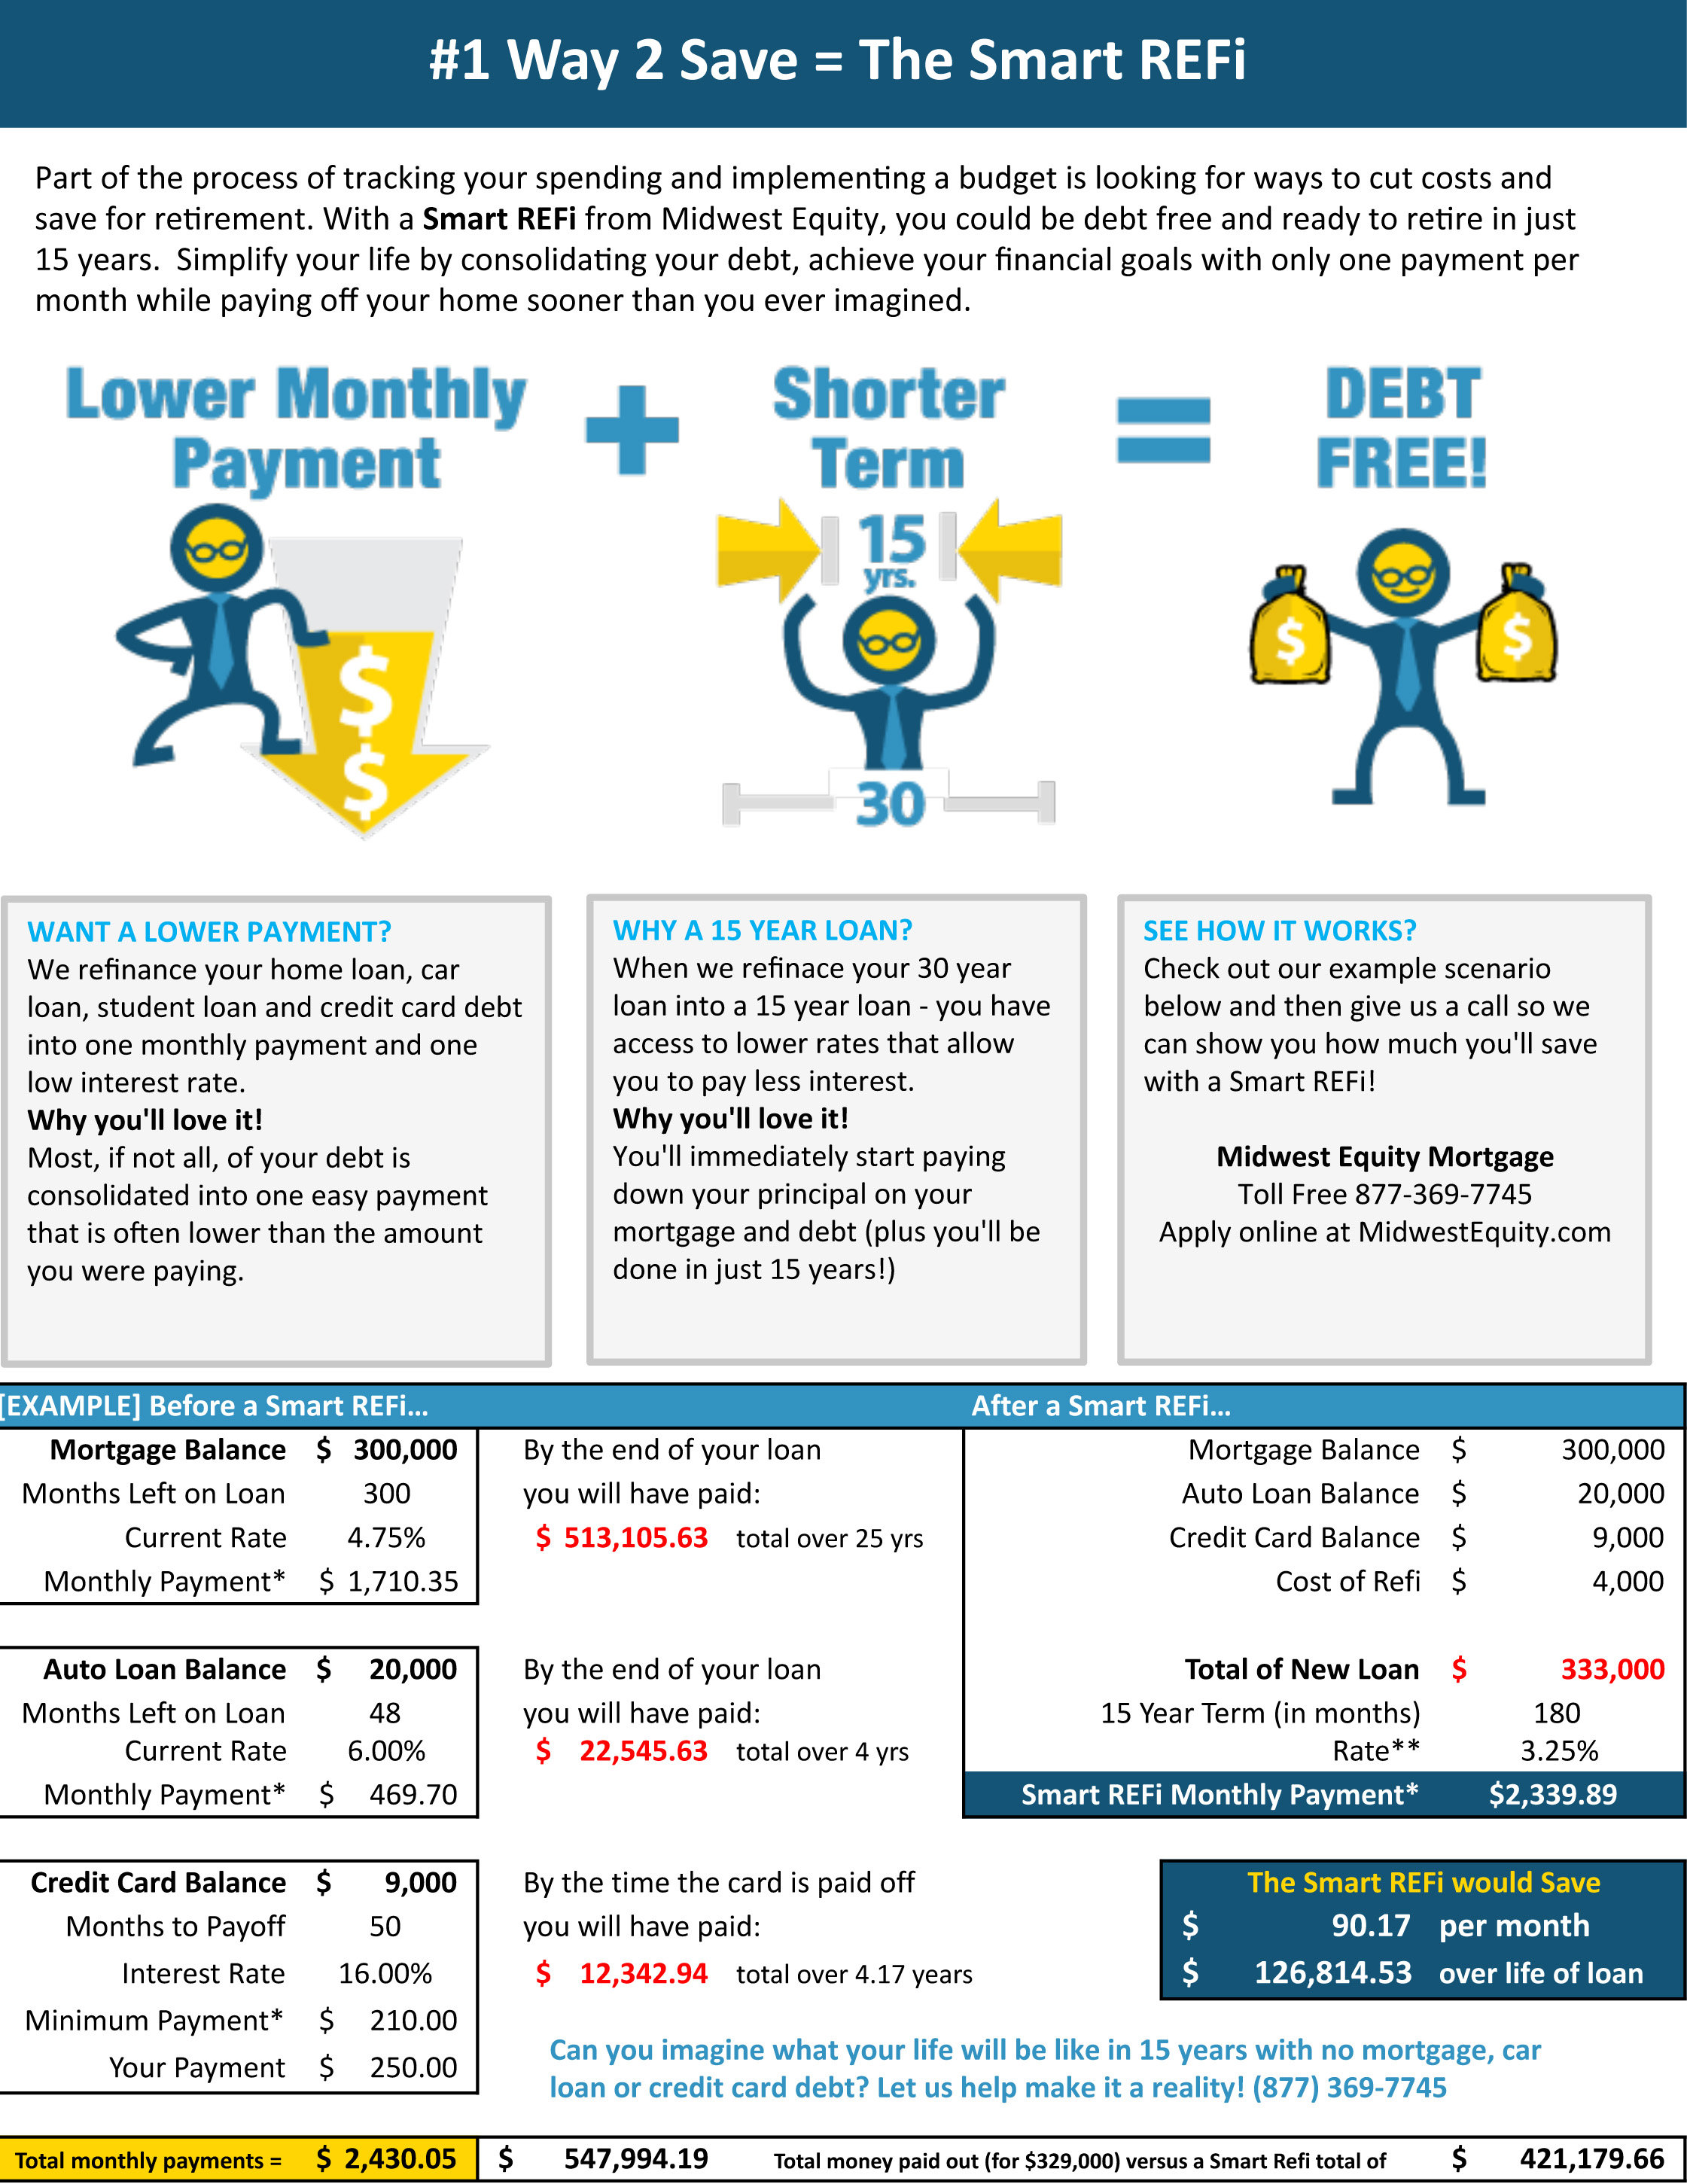 Free Budget Worksheet From Midwest Equity Mortgage Llc